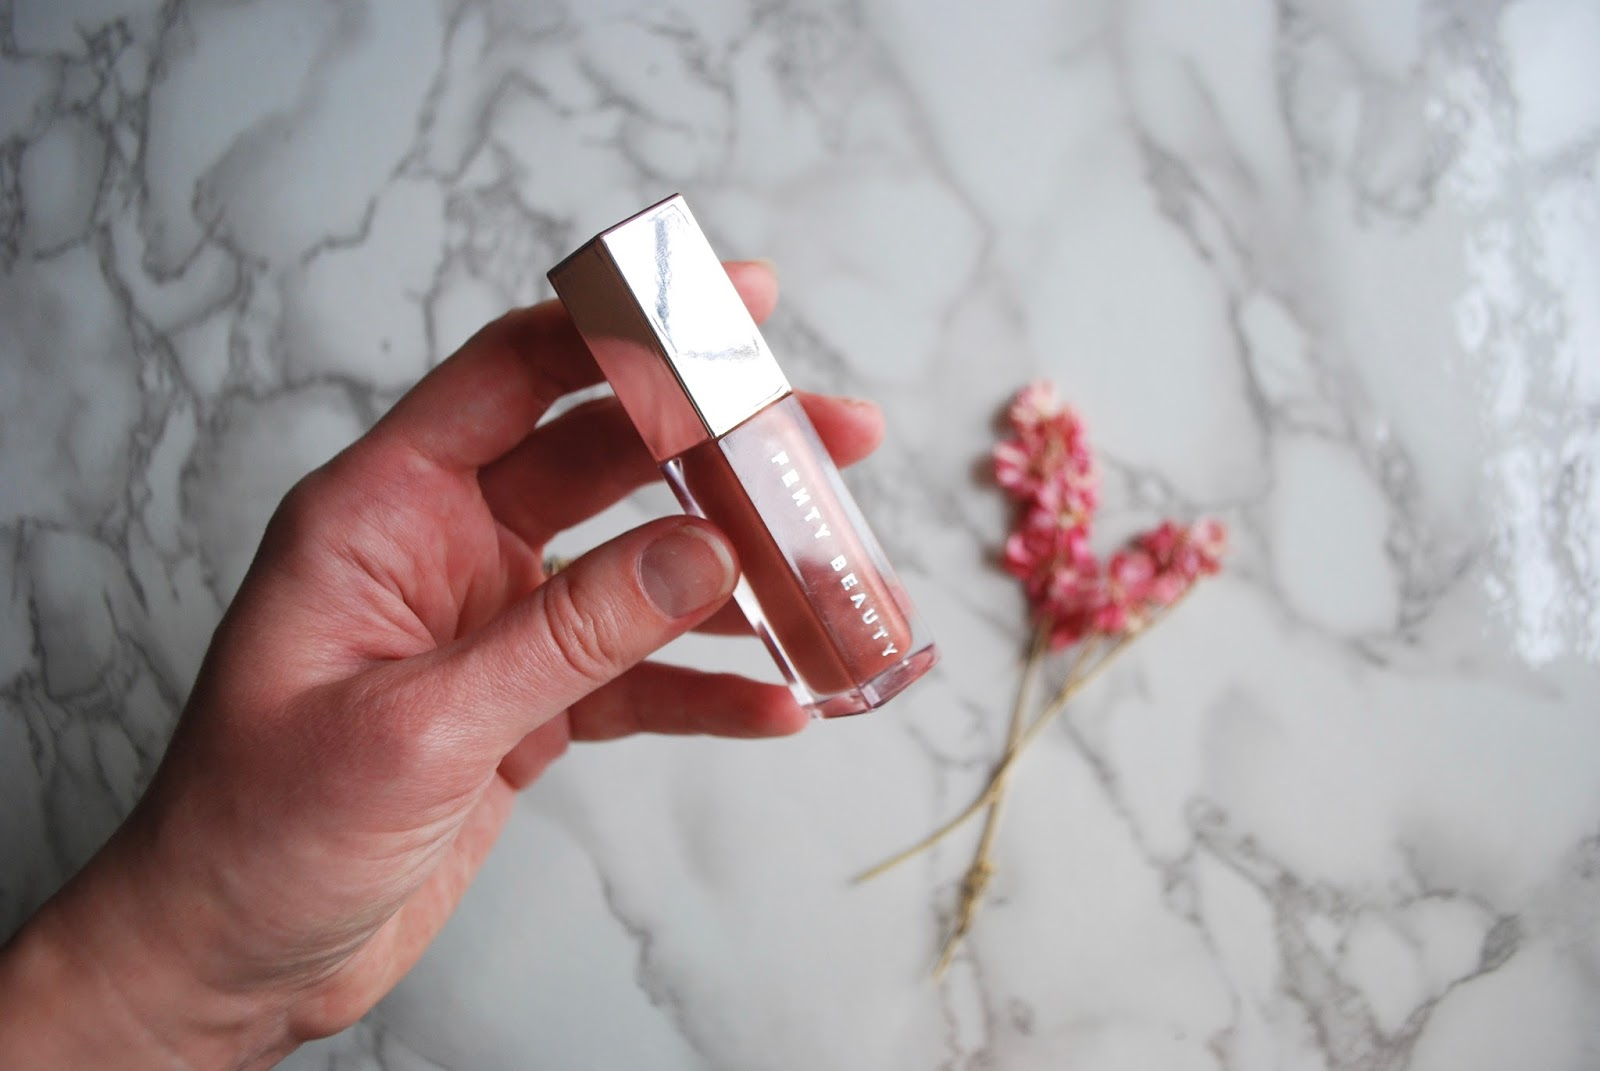 fenty beauty gloss bomb review